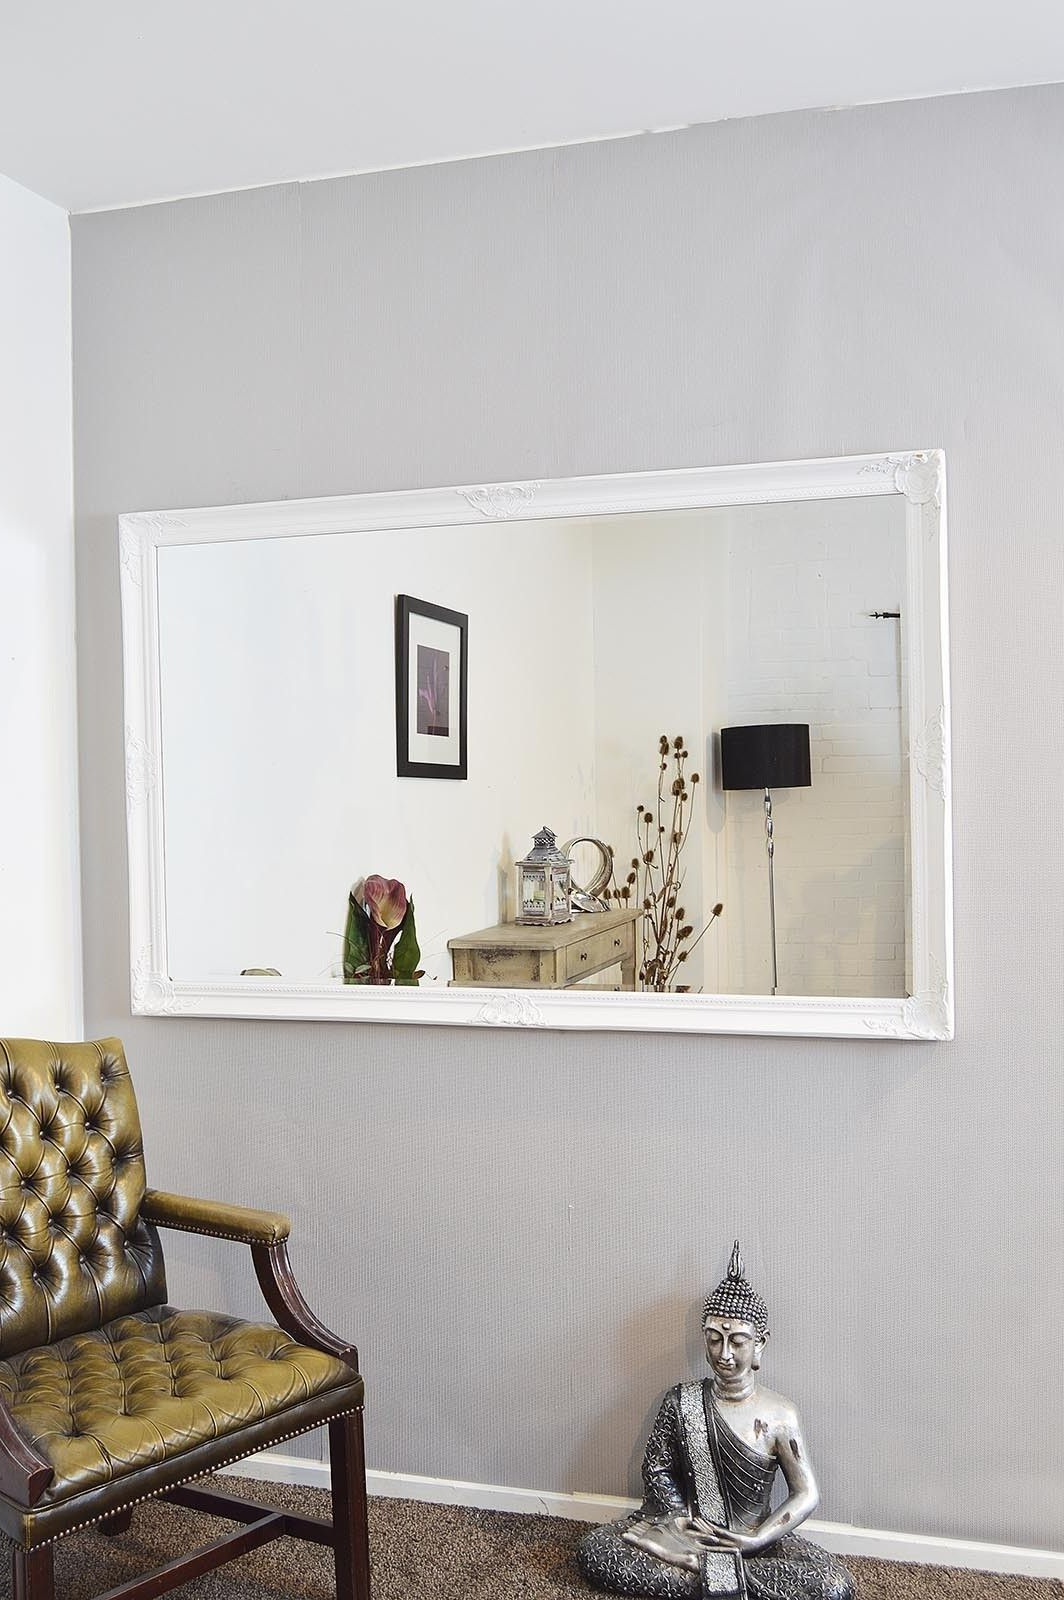 2019 Extra Large White Full Length Antique Bevelled Wall Mirror Intended For Long White Wall Mirrors (View 1 of 20)